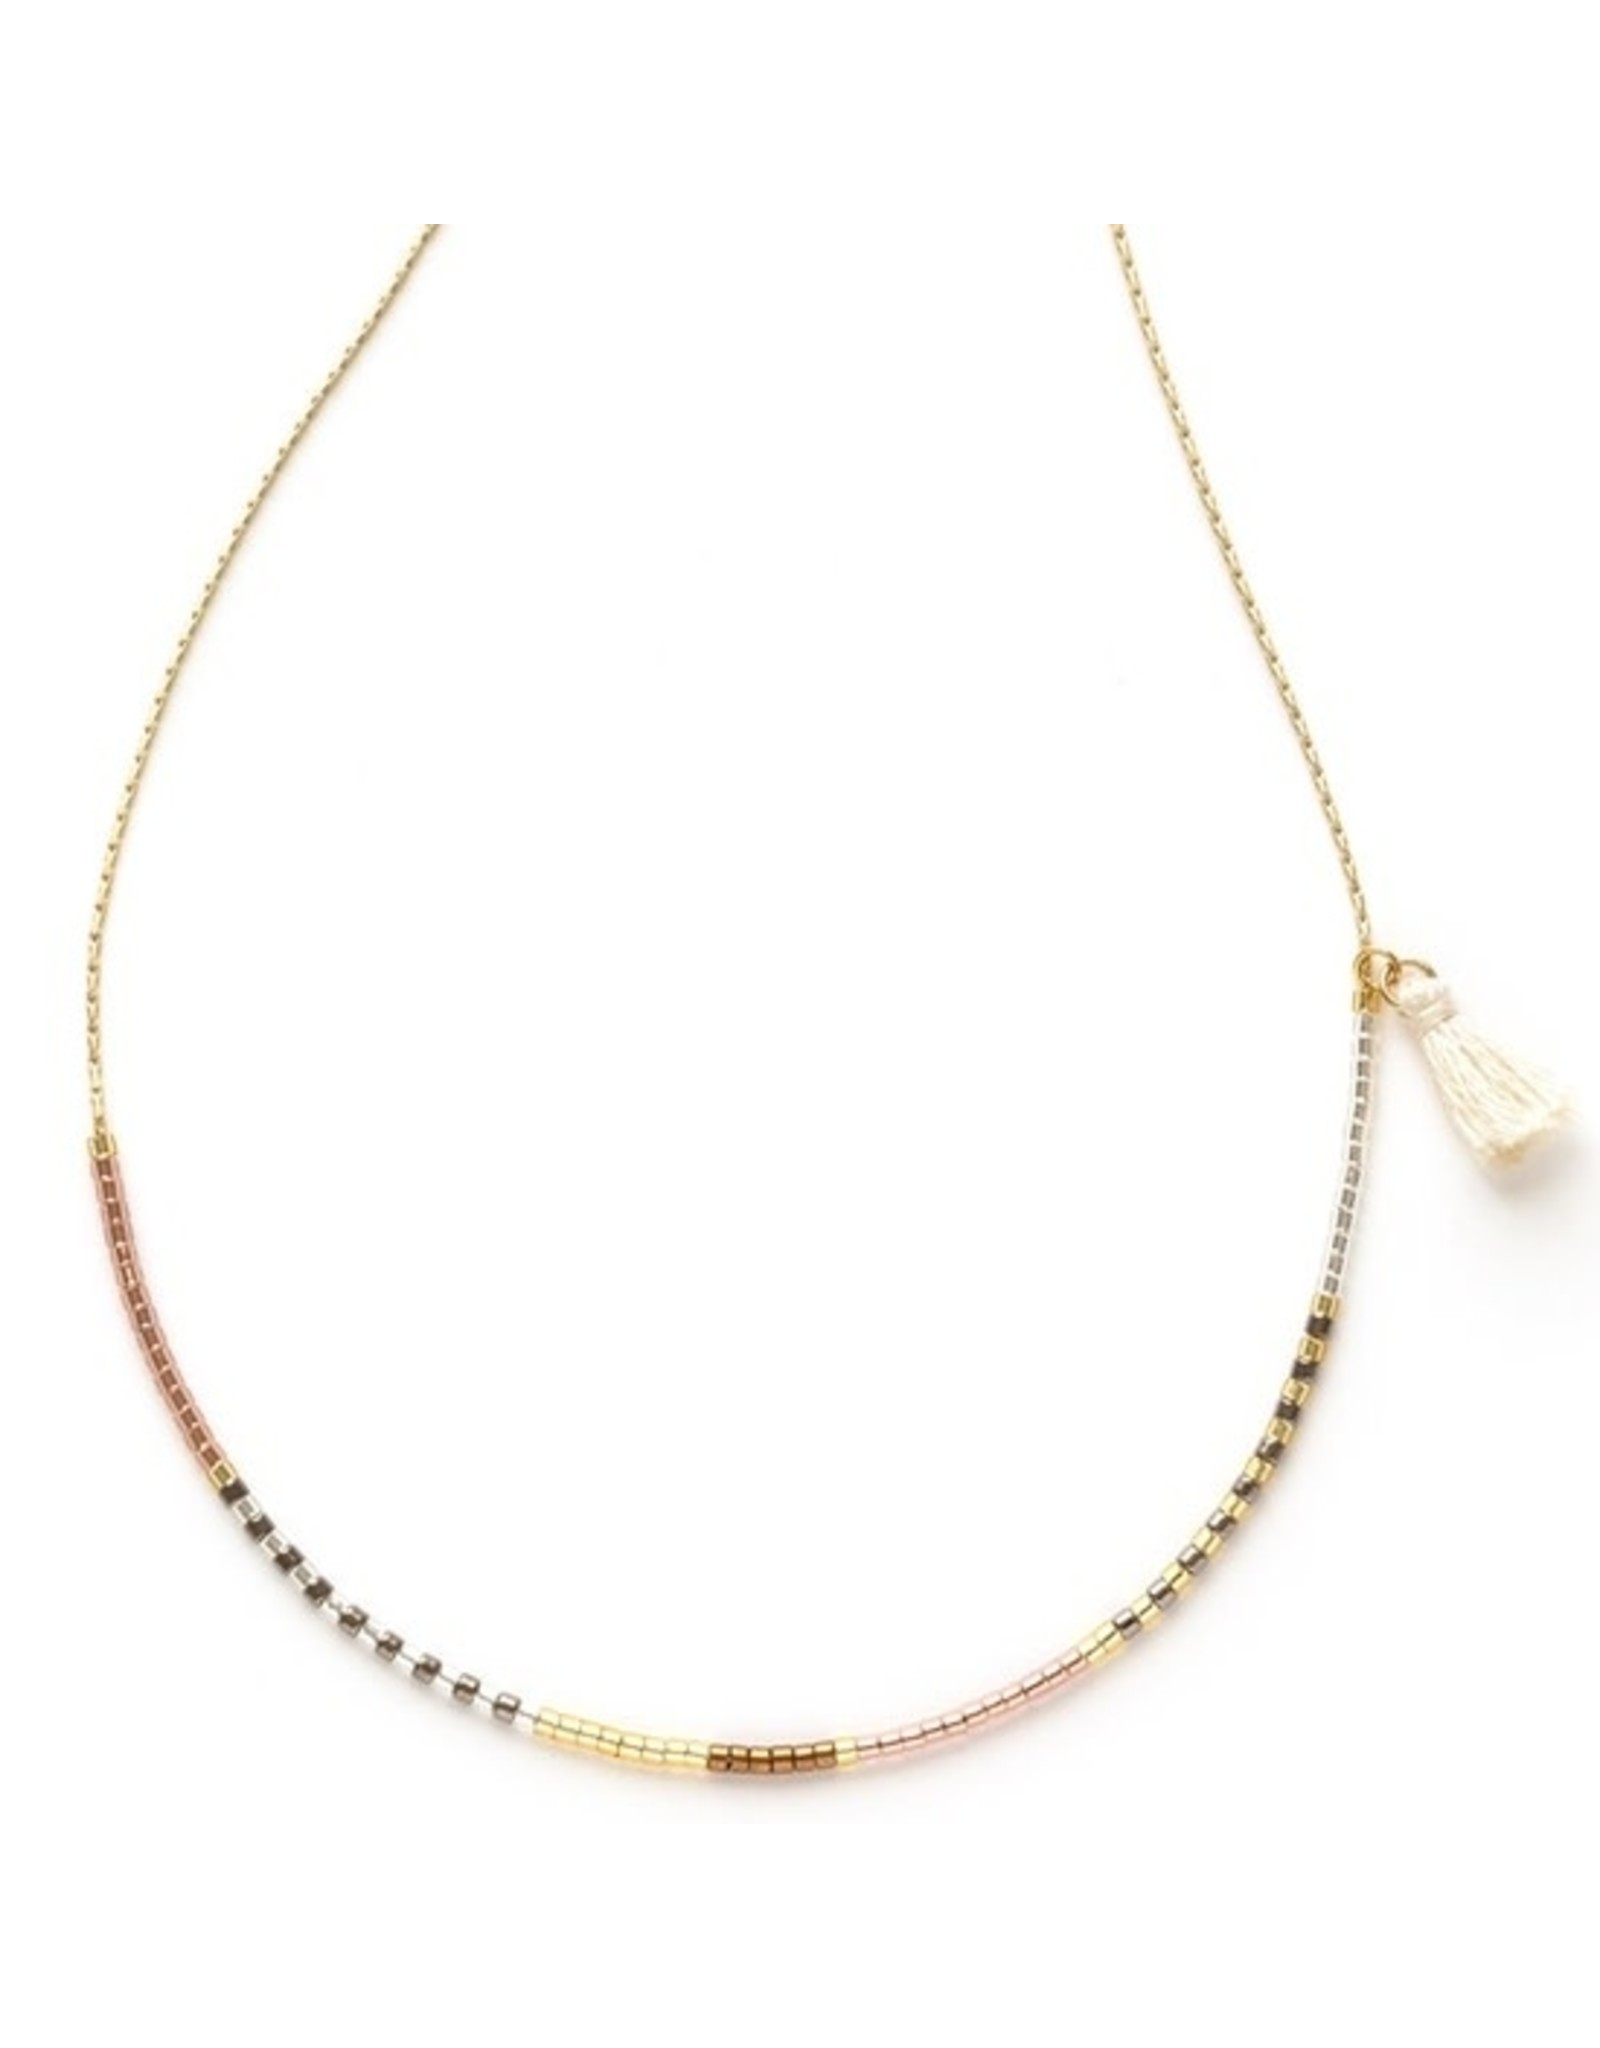 Japanese Seed Bead Necklace - Champagne